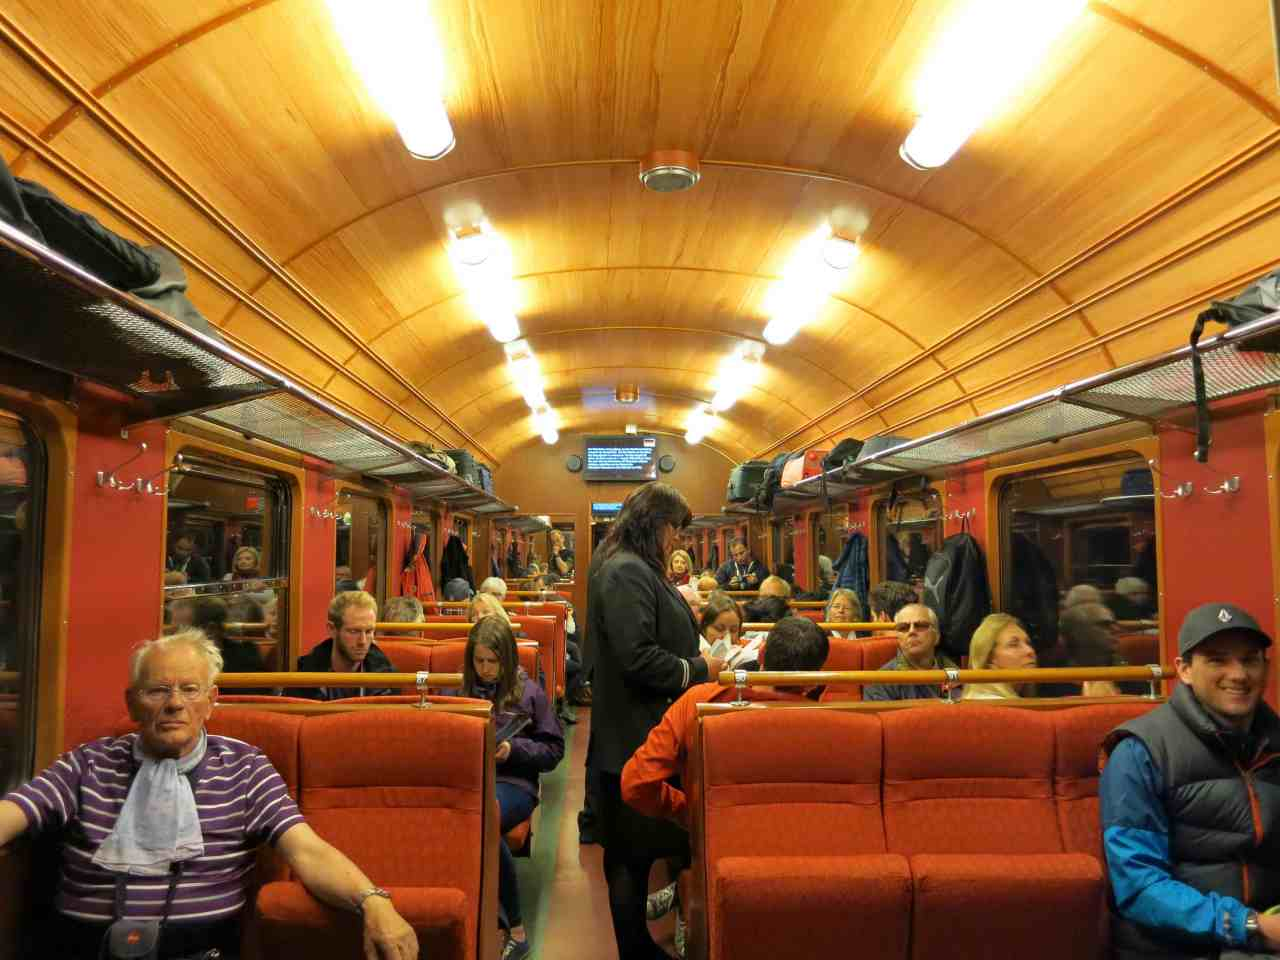 flamsbana interior train ride norway